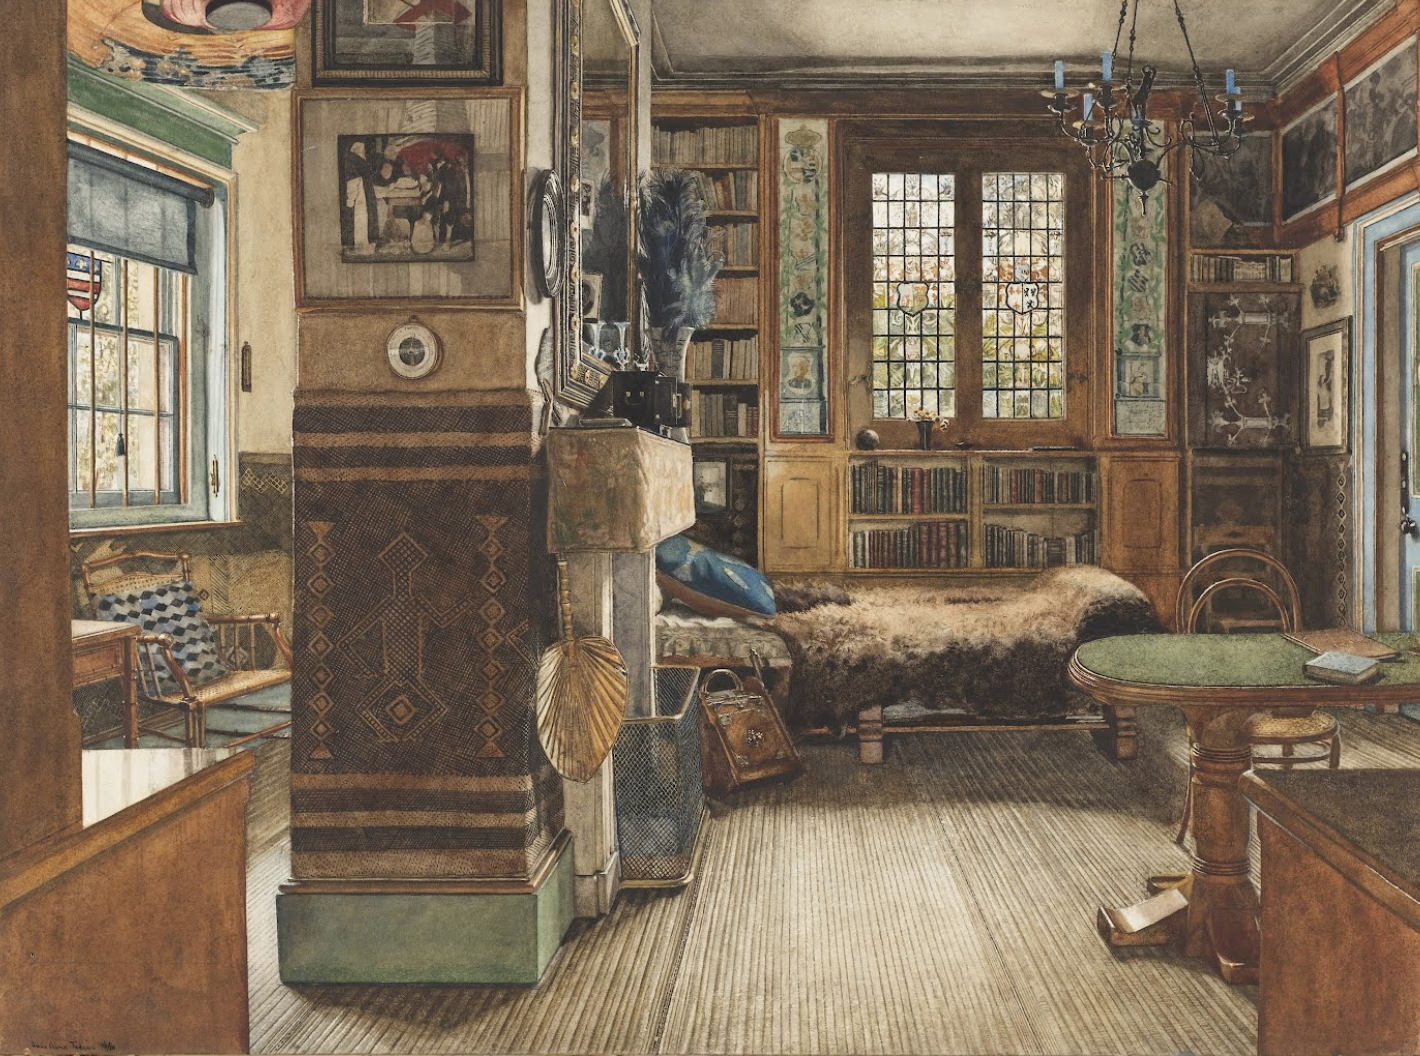 Sir Lawrence Alma-Tadema,  Library in Townshend House ,  London,  1888, Brush and watercolor and gouache, pen and ink, graphite on white paper.  Cooper Hewitt, Smithsonian Design Museum , New York.